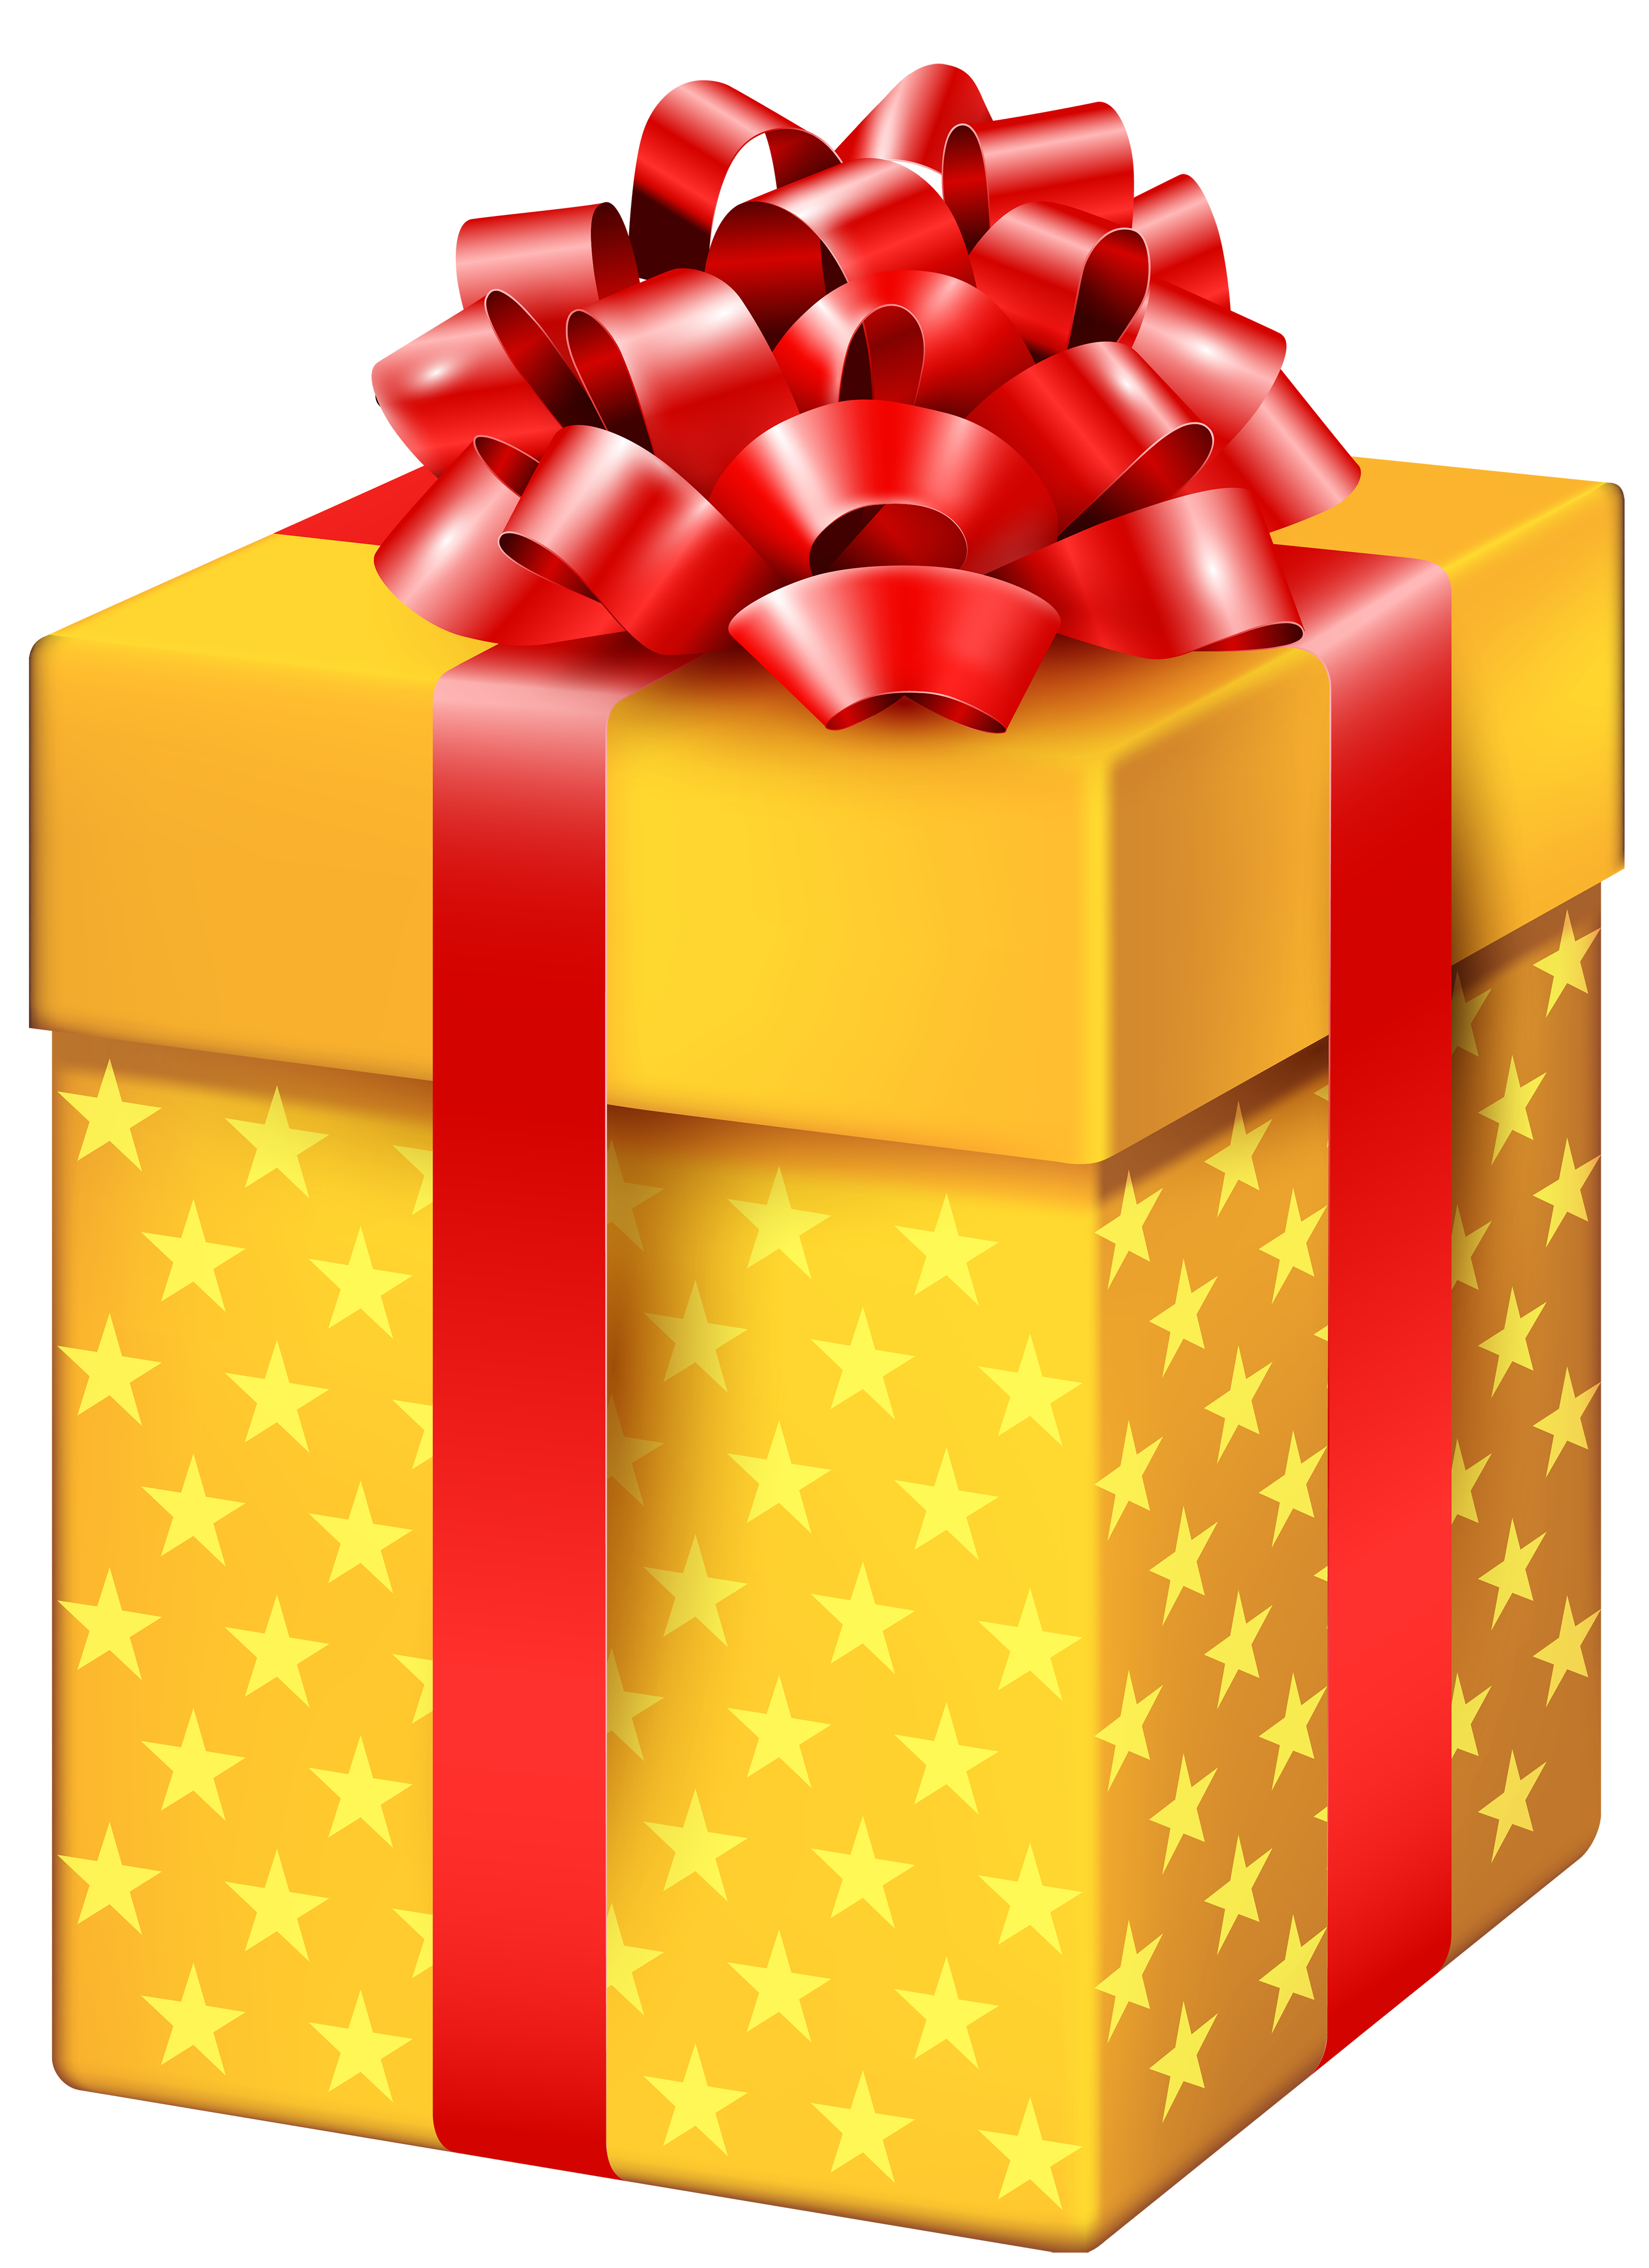 Gift clipart special gift. Yellow box with stars